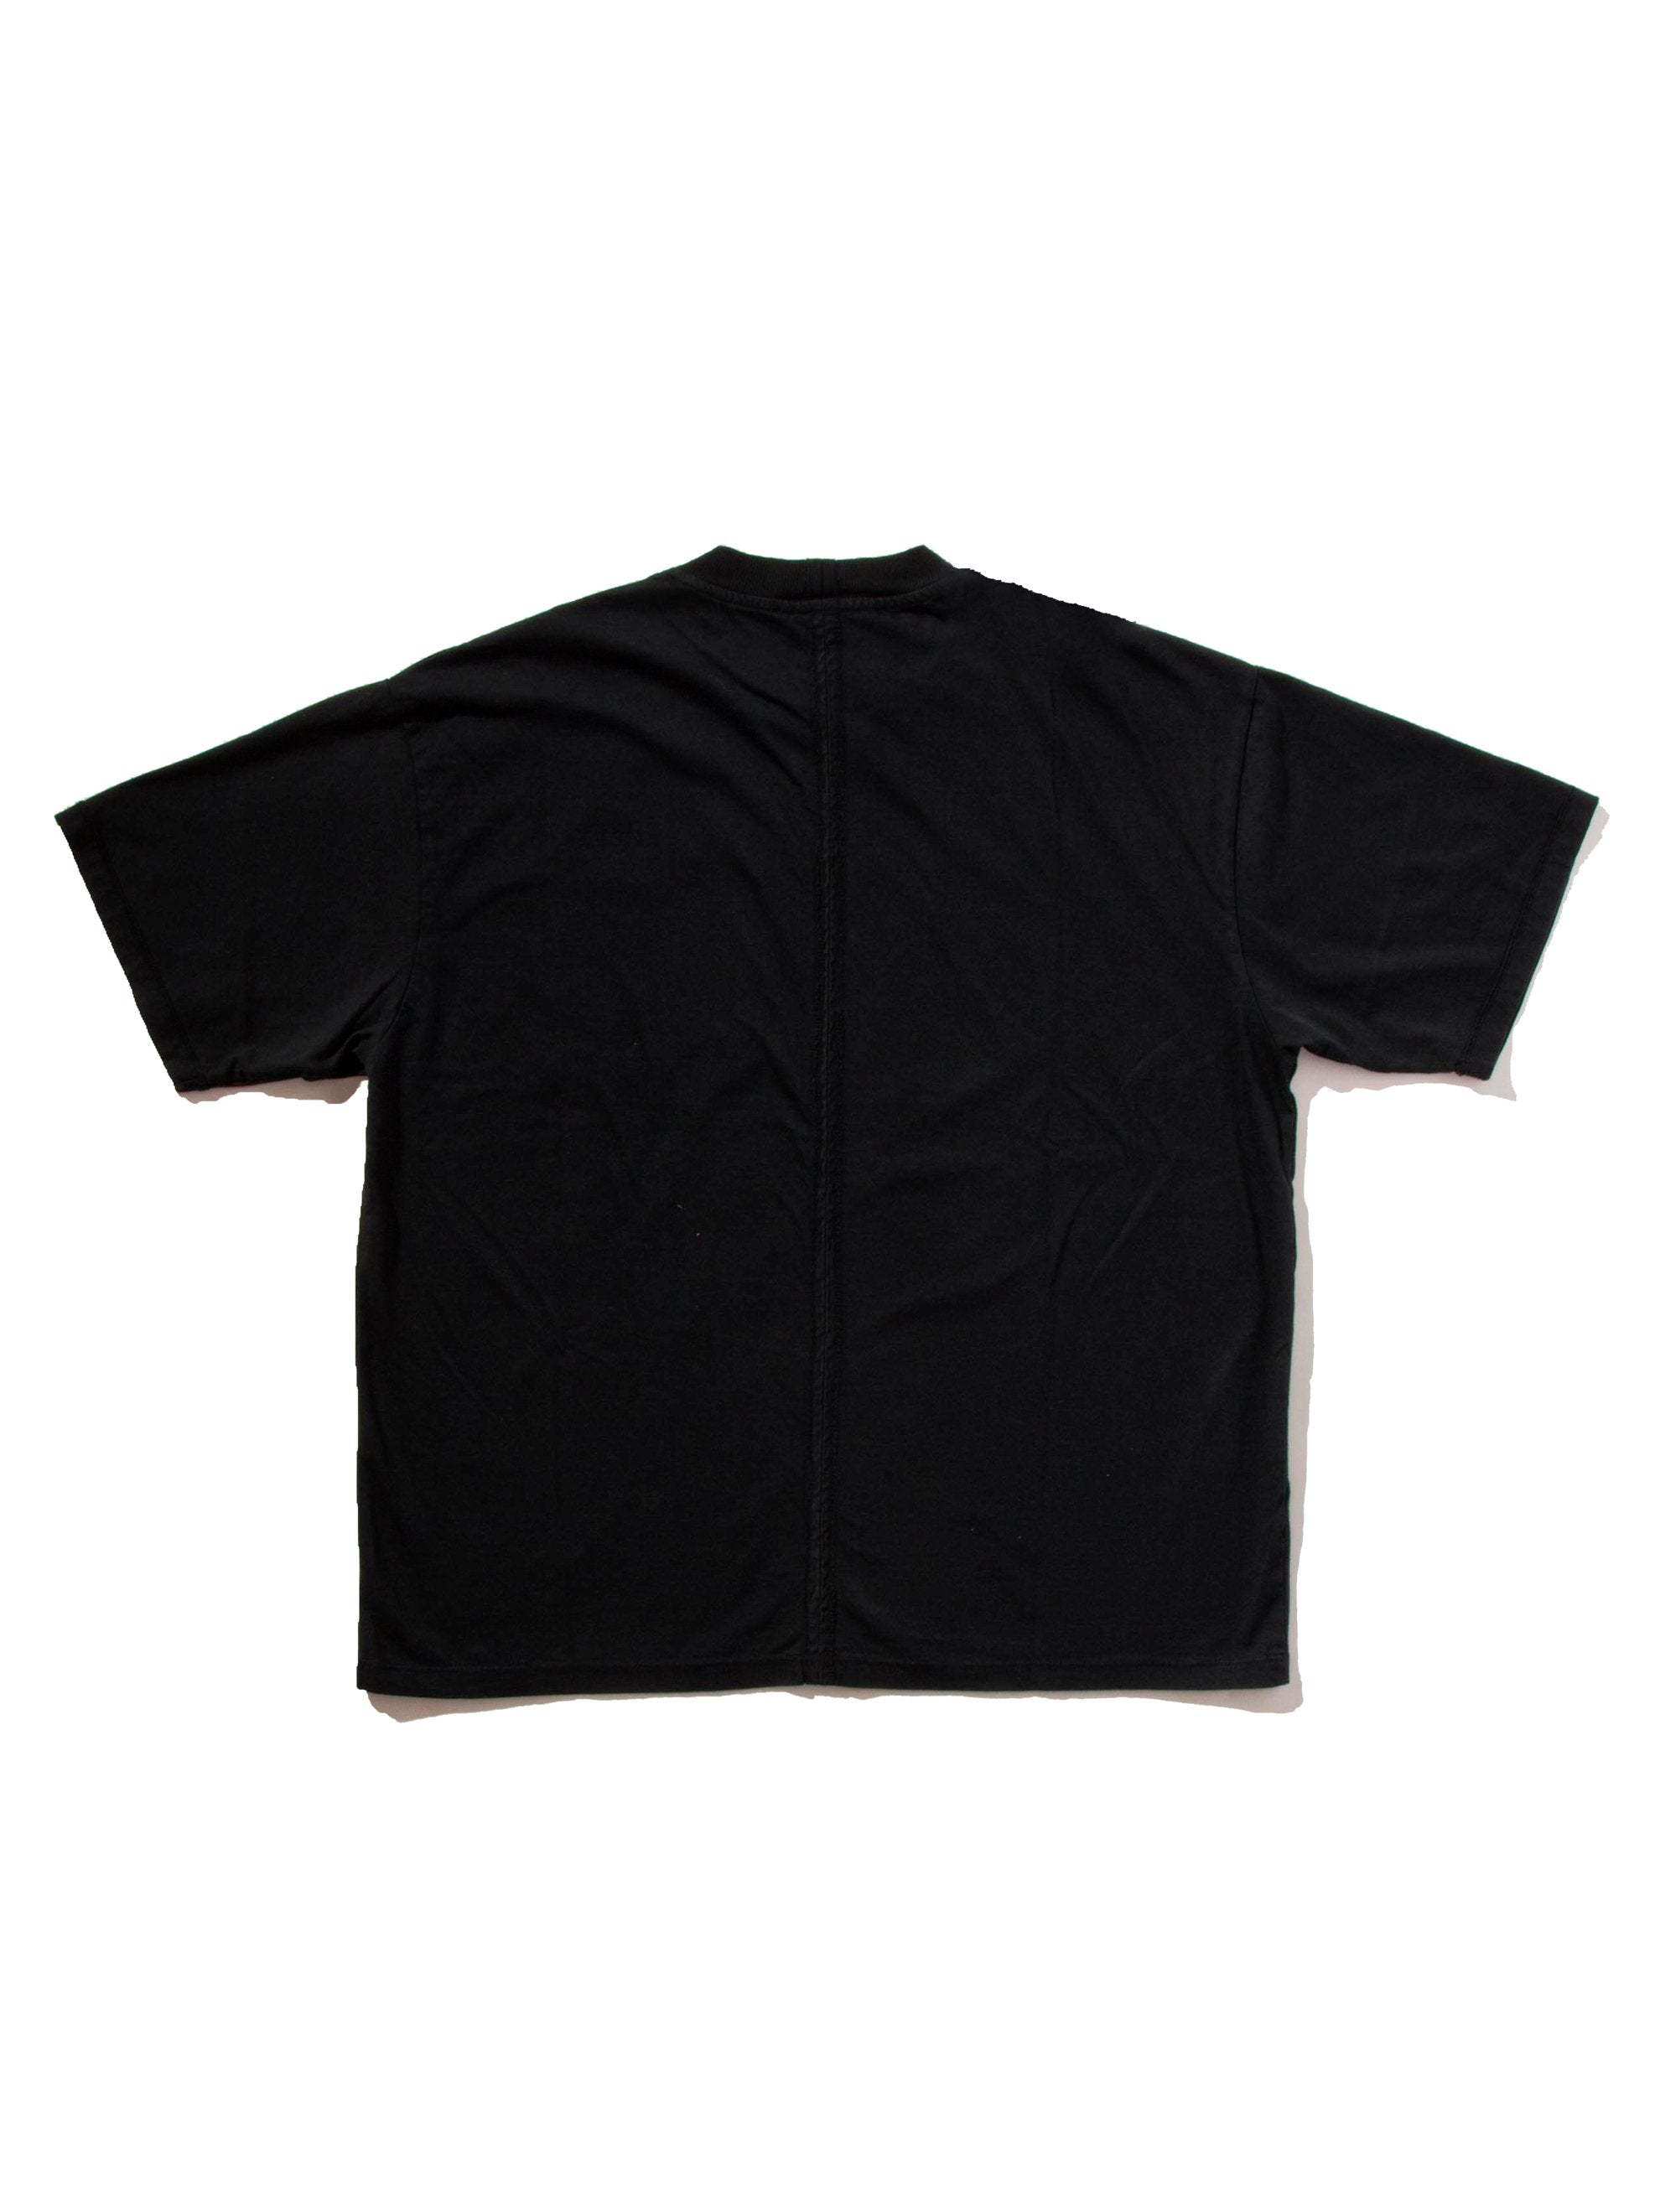 Black Jersey Cuts T-Shirt (Patch) 5